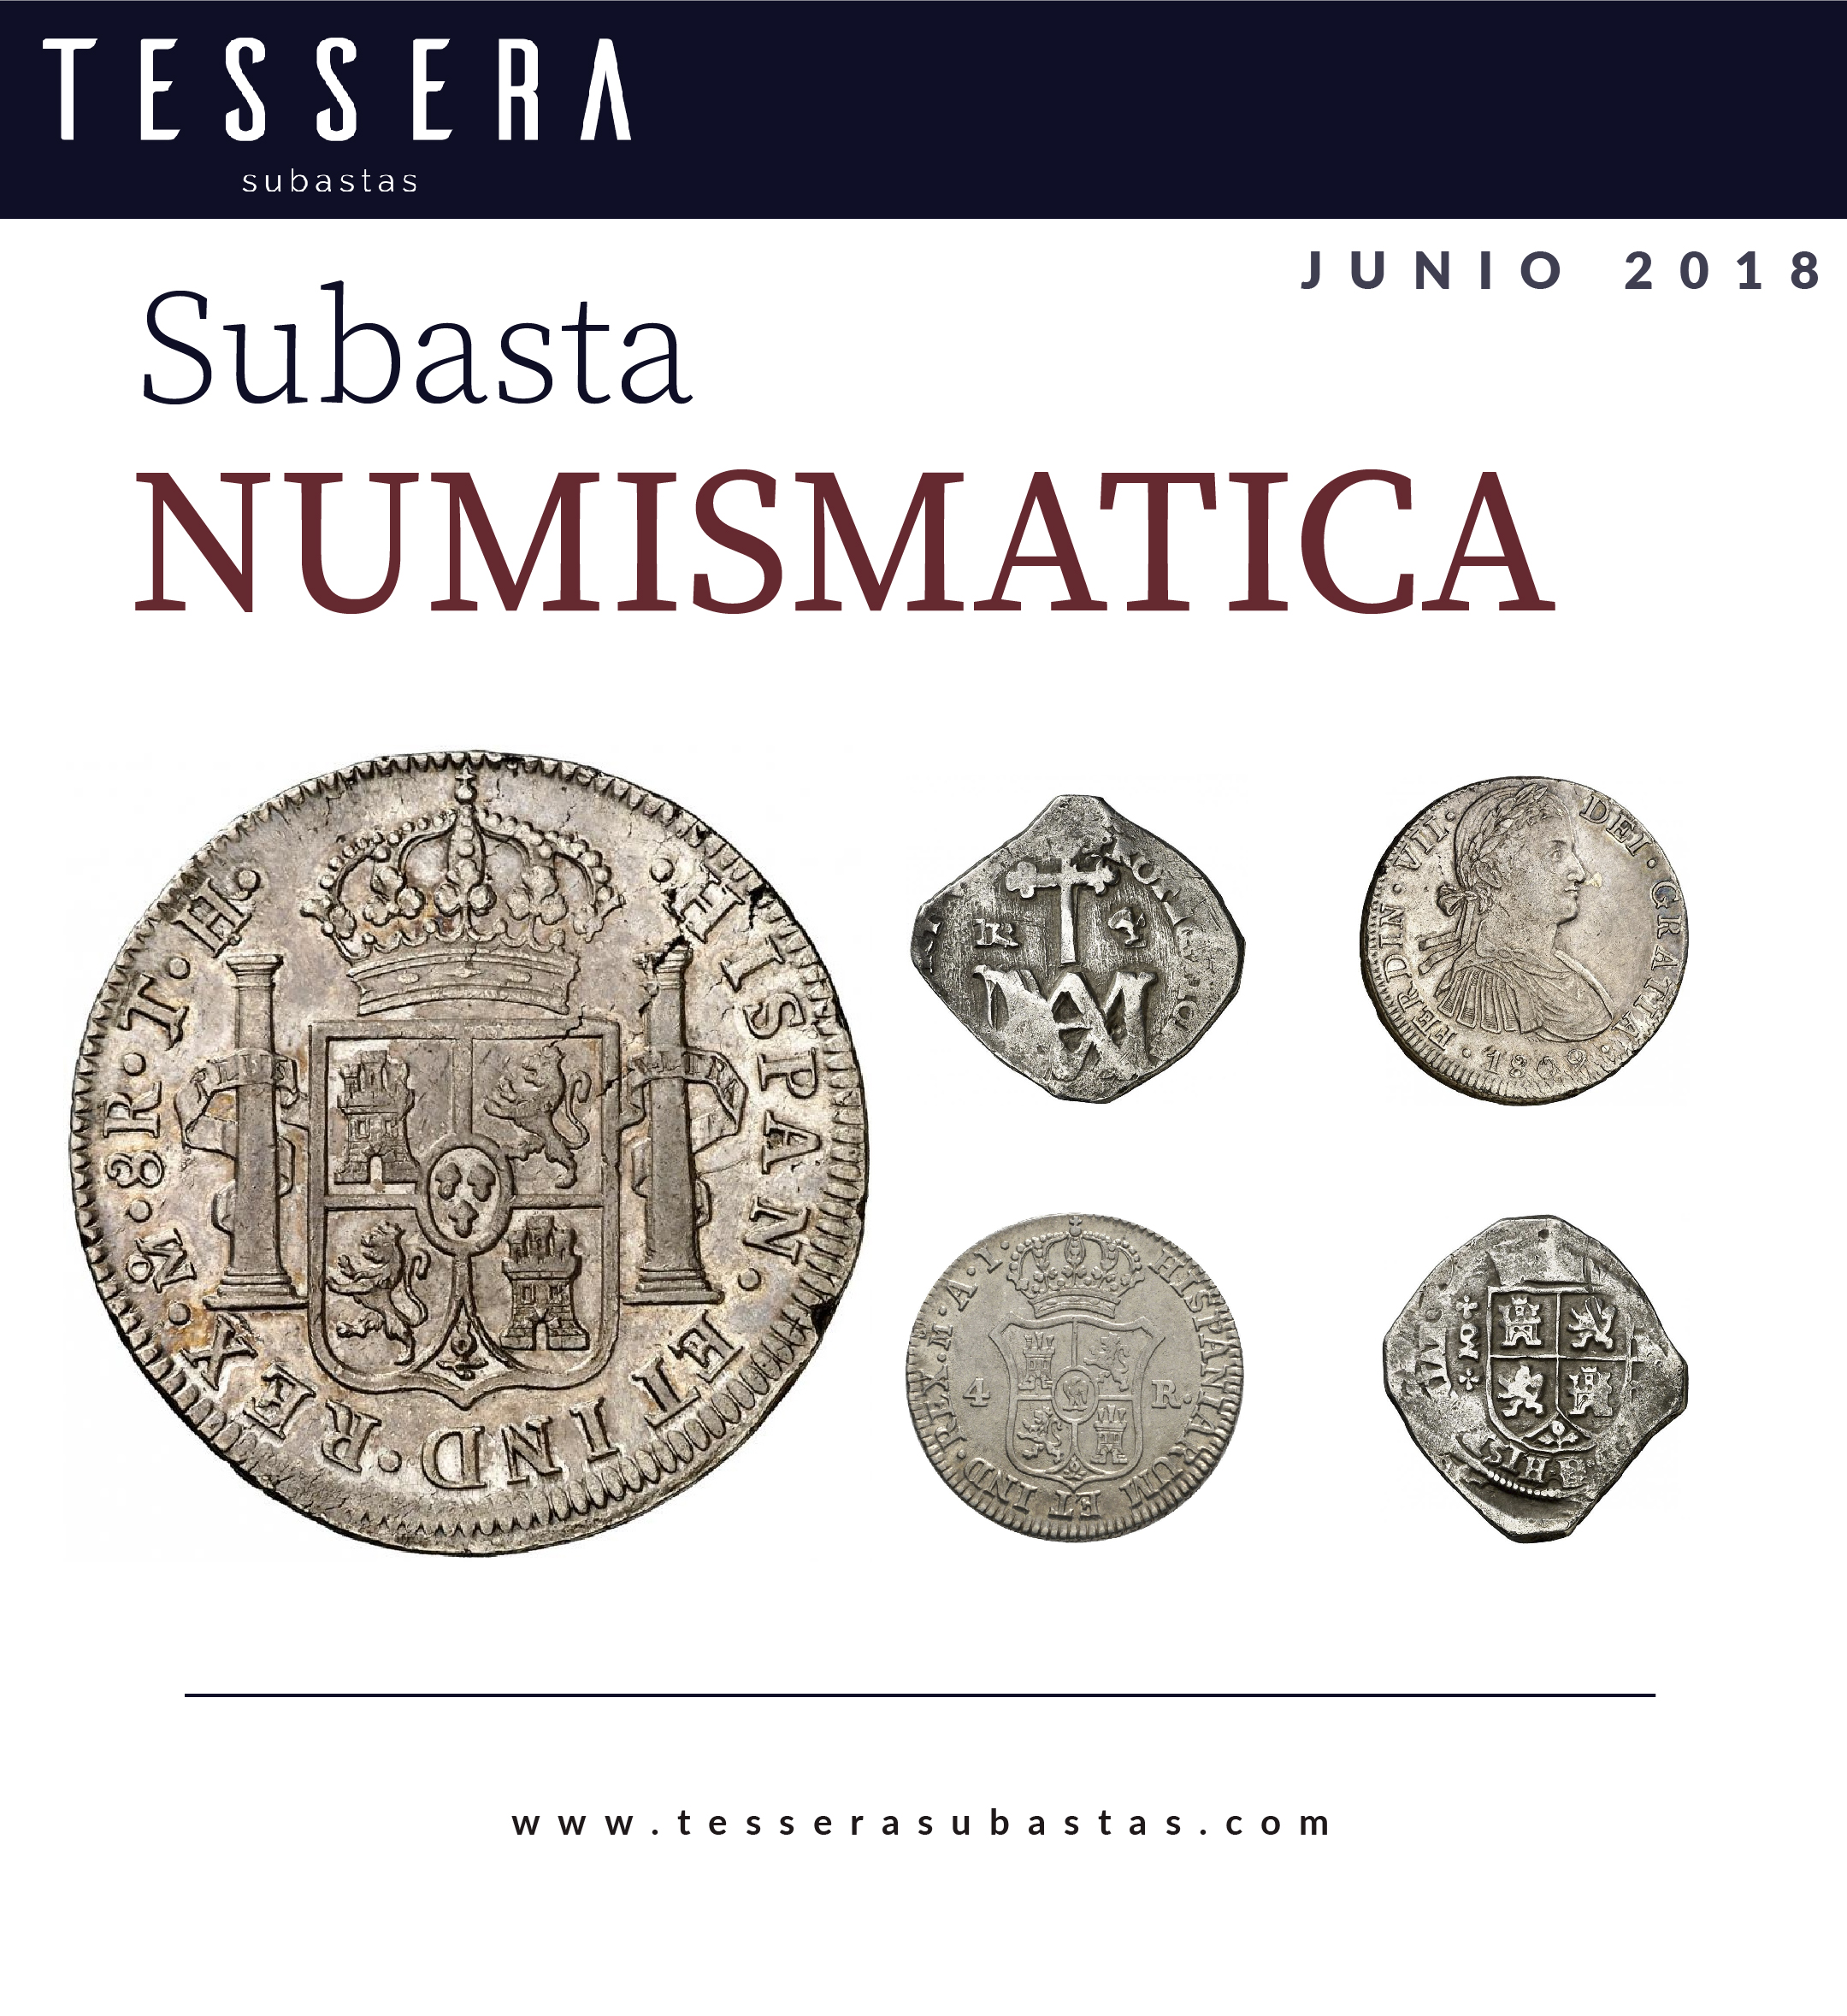 General Numismatic Auction